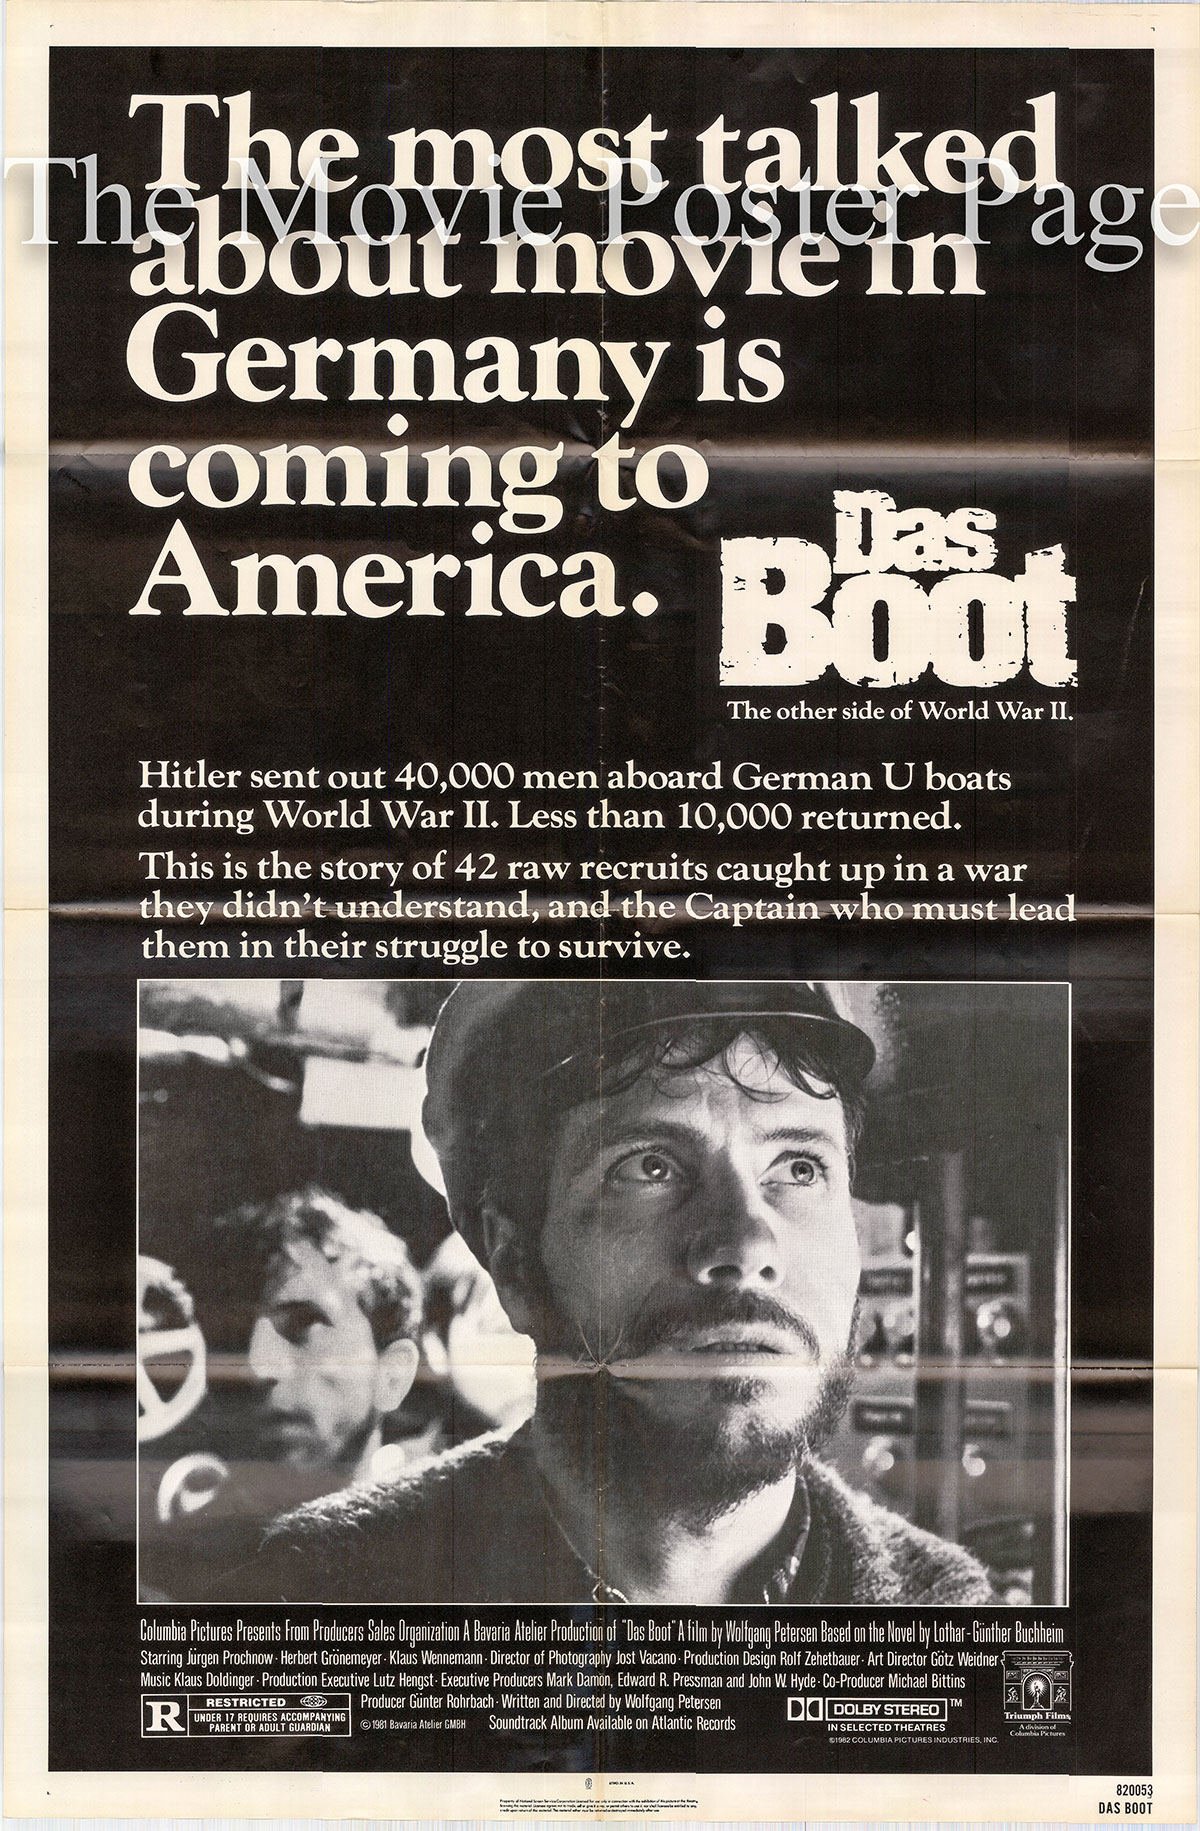 Pictured is a US one-sheet poster for the 1982 Wolfgang Petersen film Das Boot starring Jurgen Prochnow.